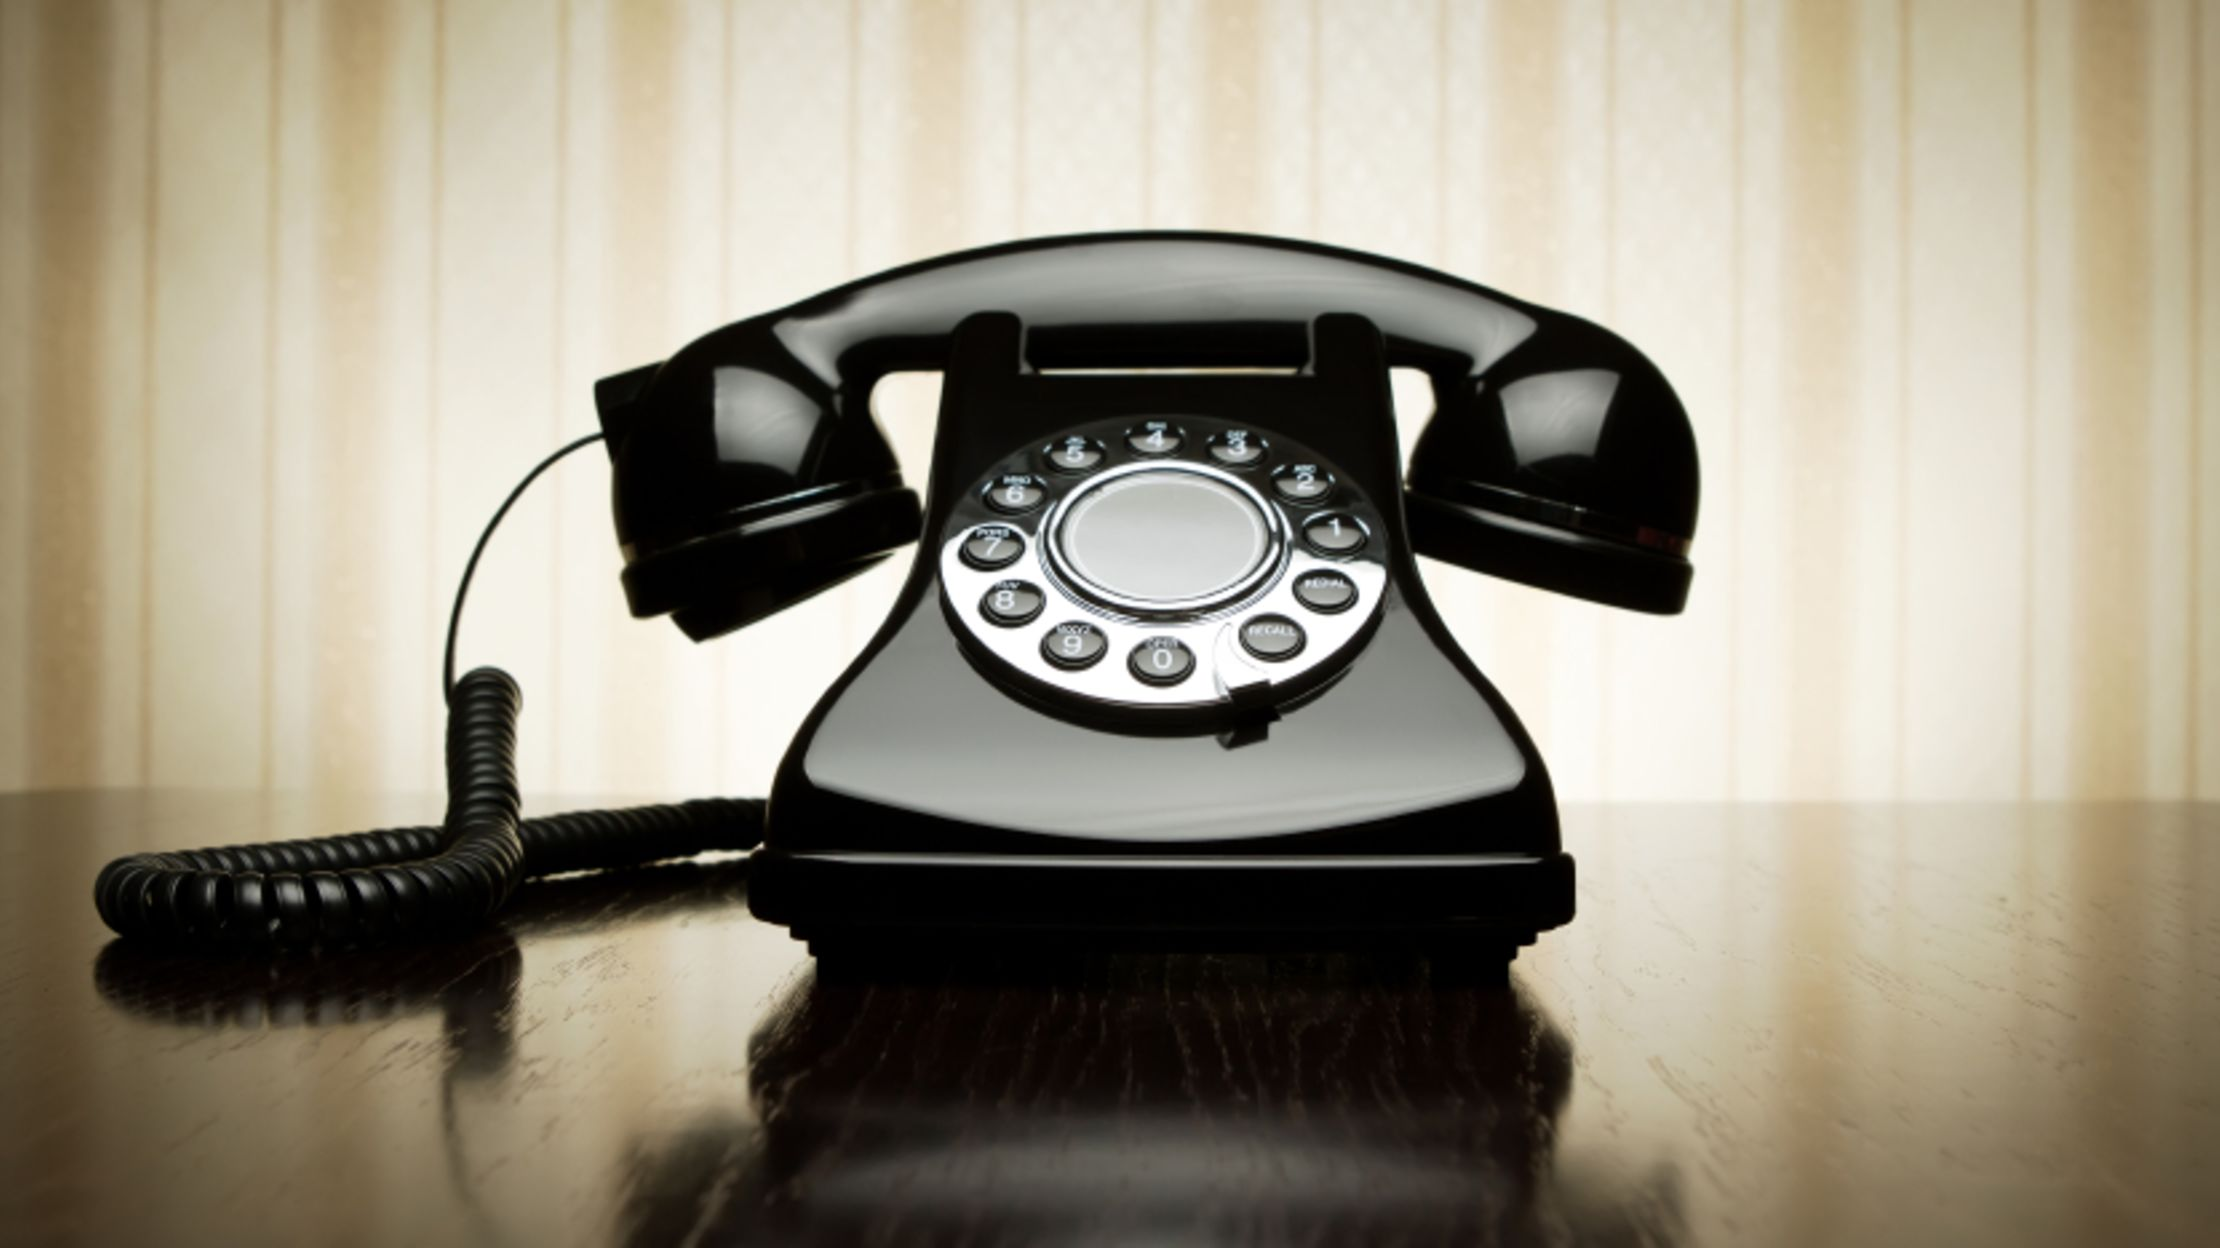 10 Aspects Of Old Telephones That Might Confuse Younger